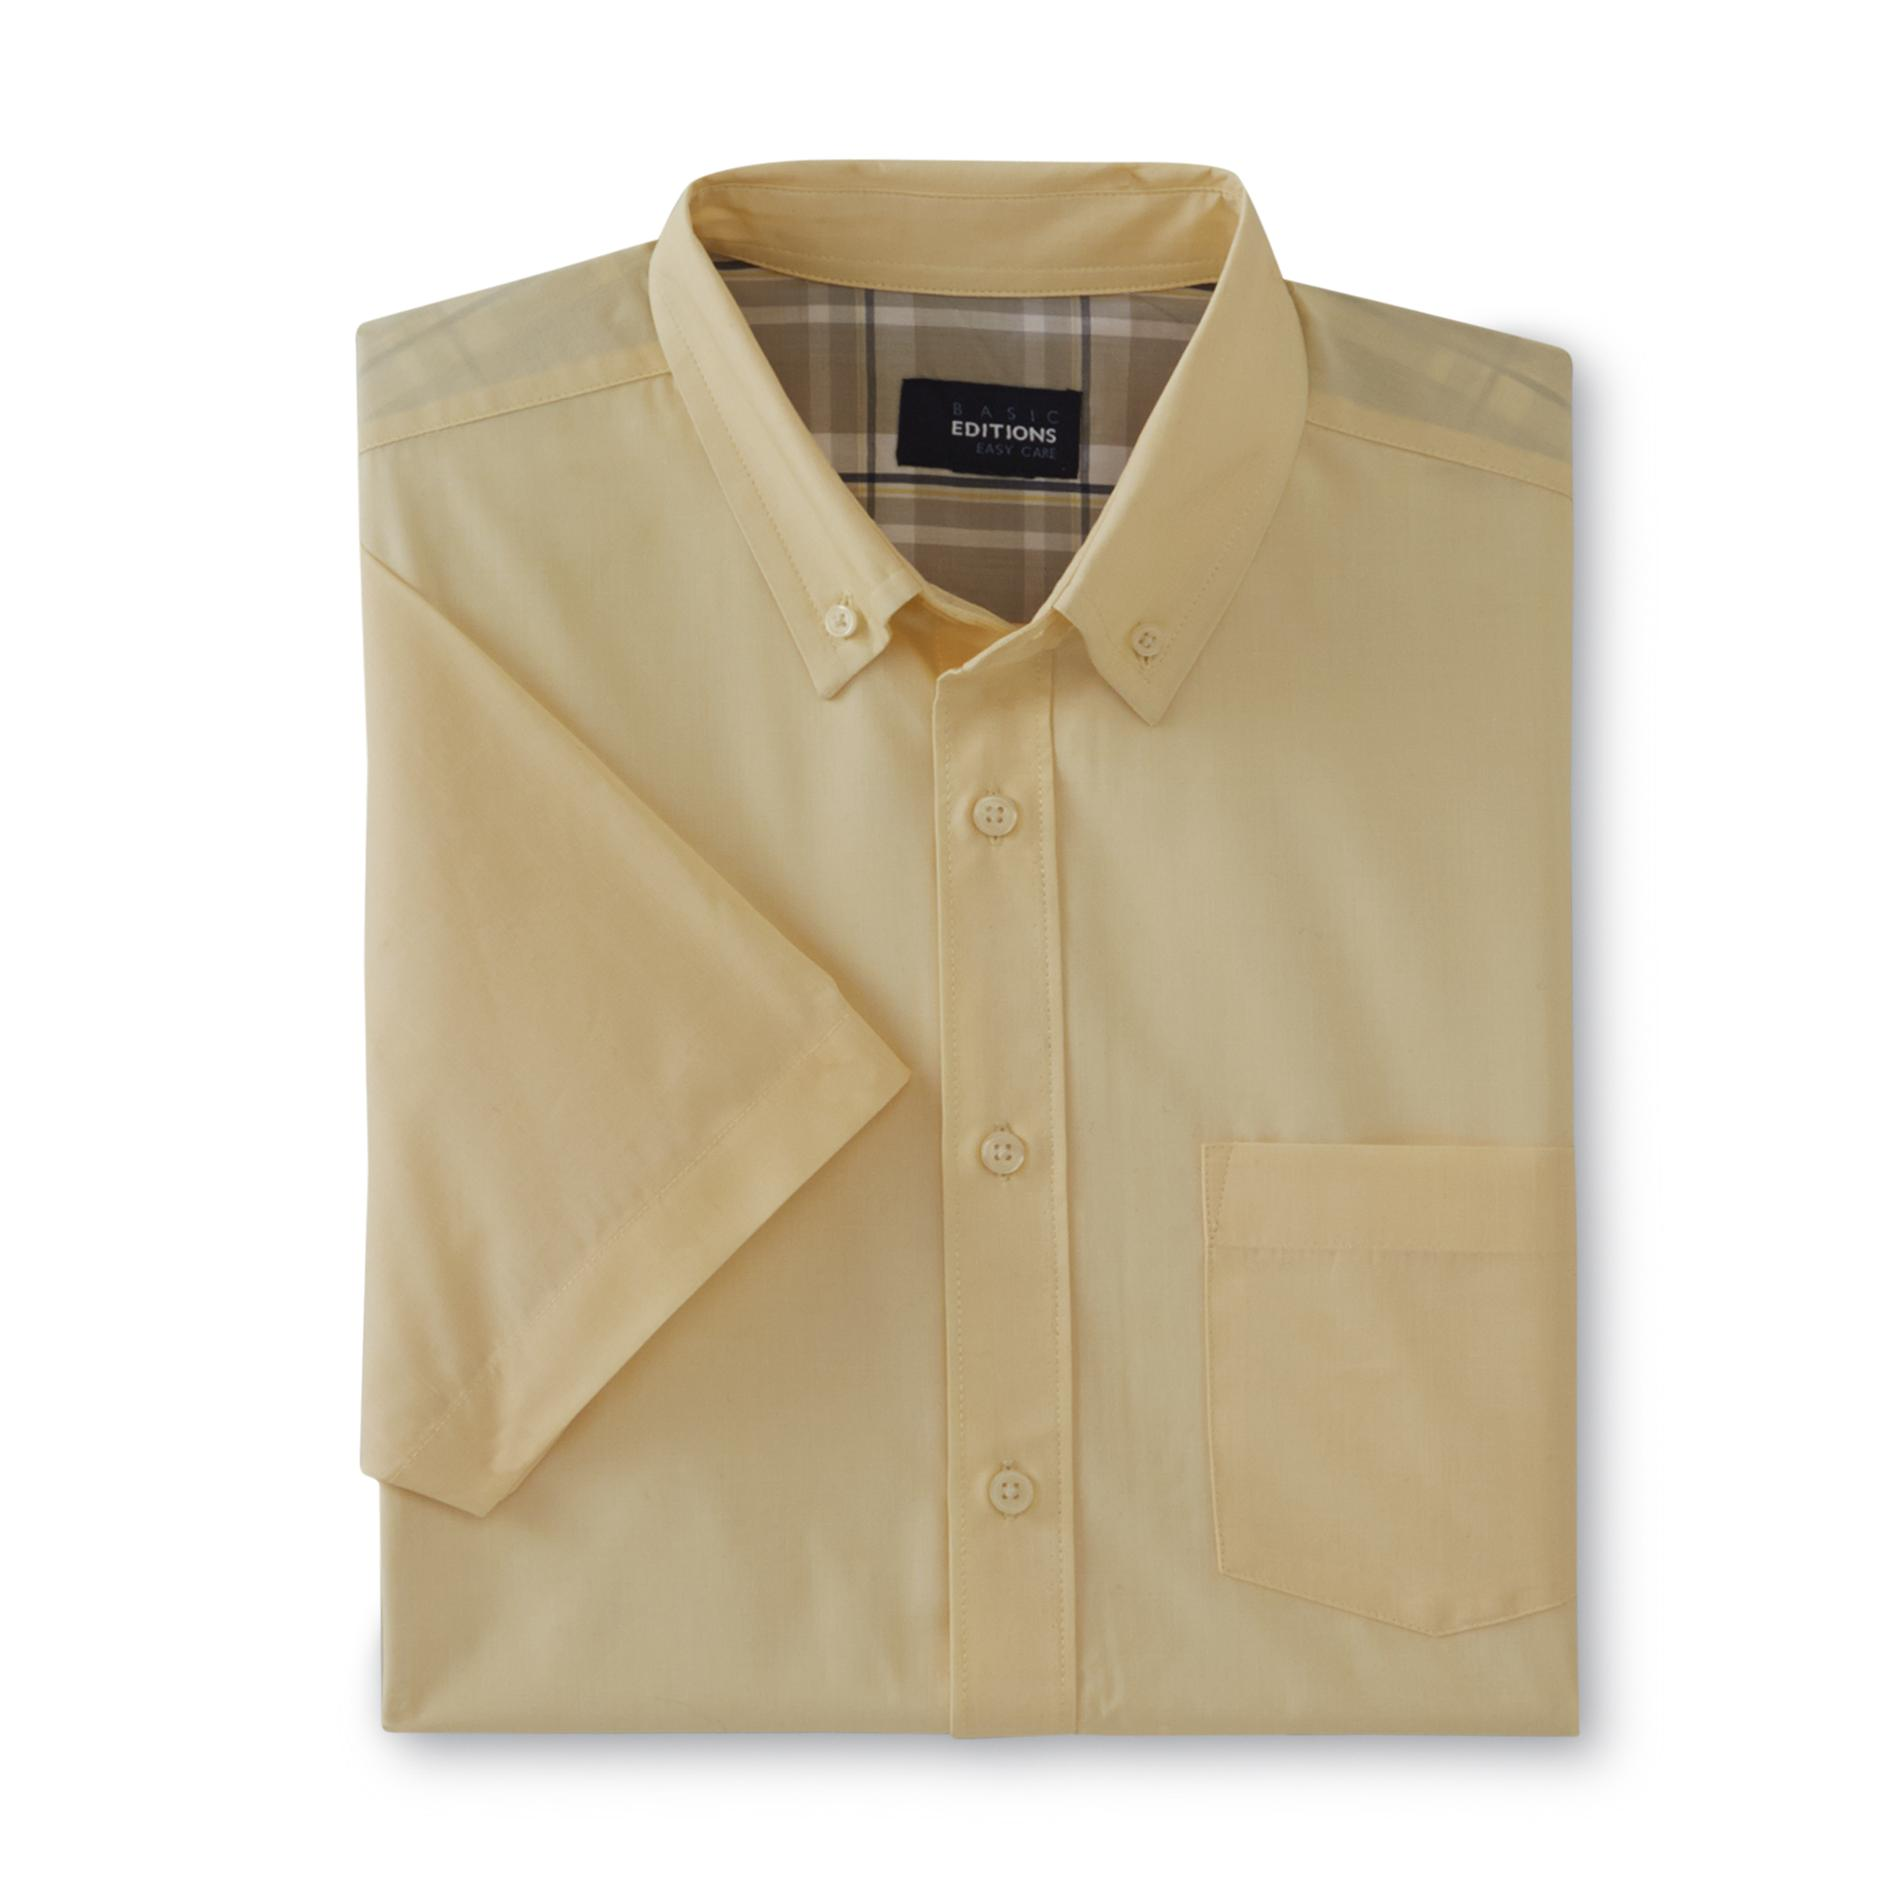 Basic Editions Men's Easy Care Short-Sleeve Dress Shirt